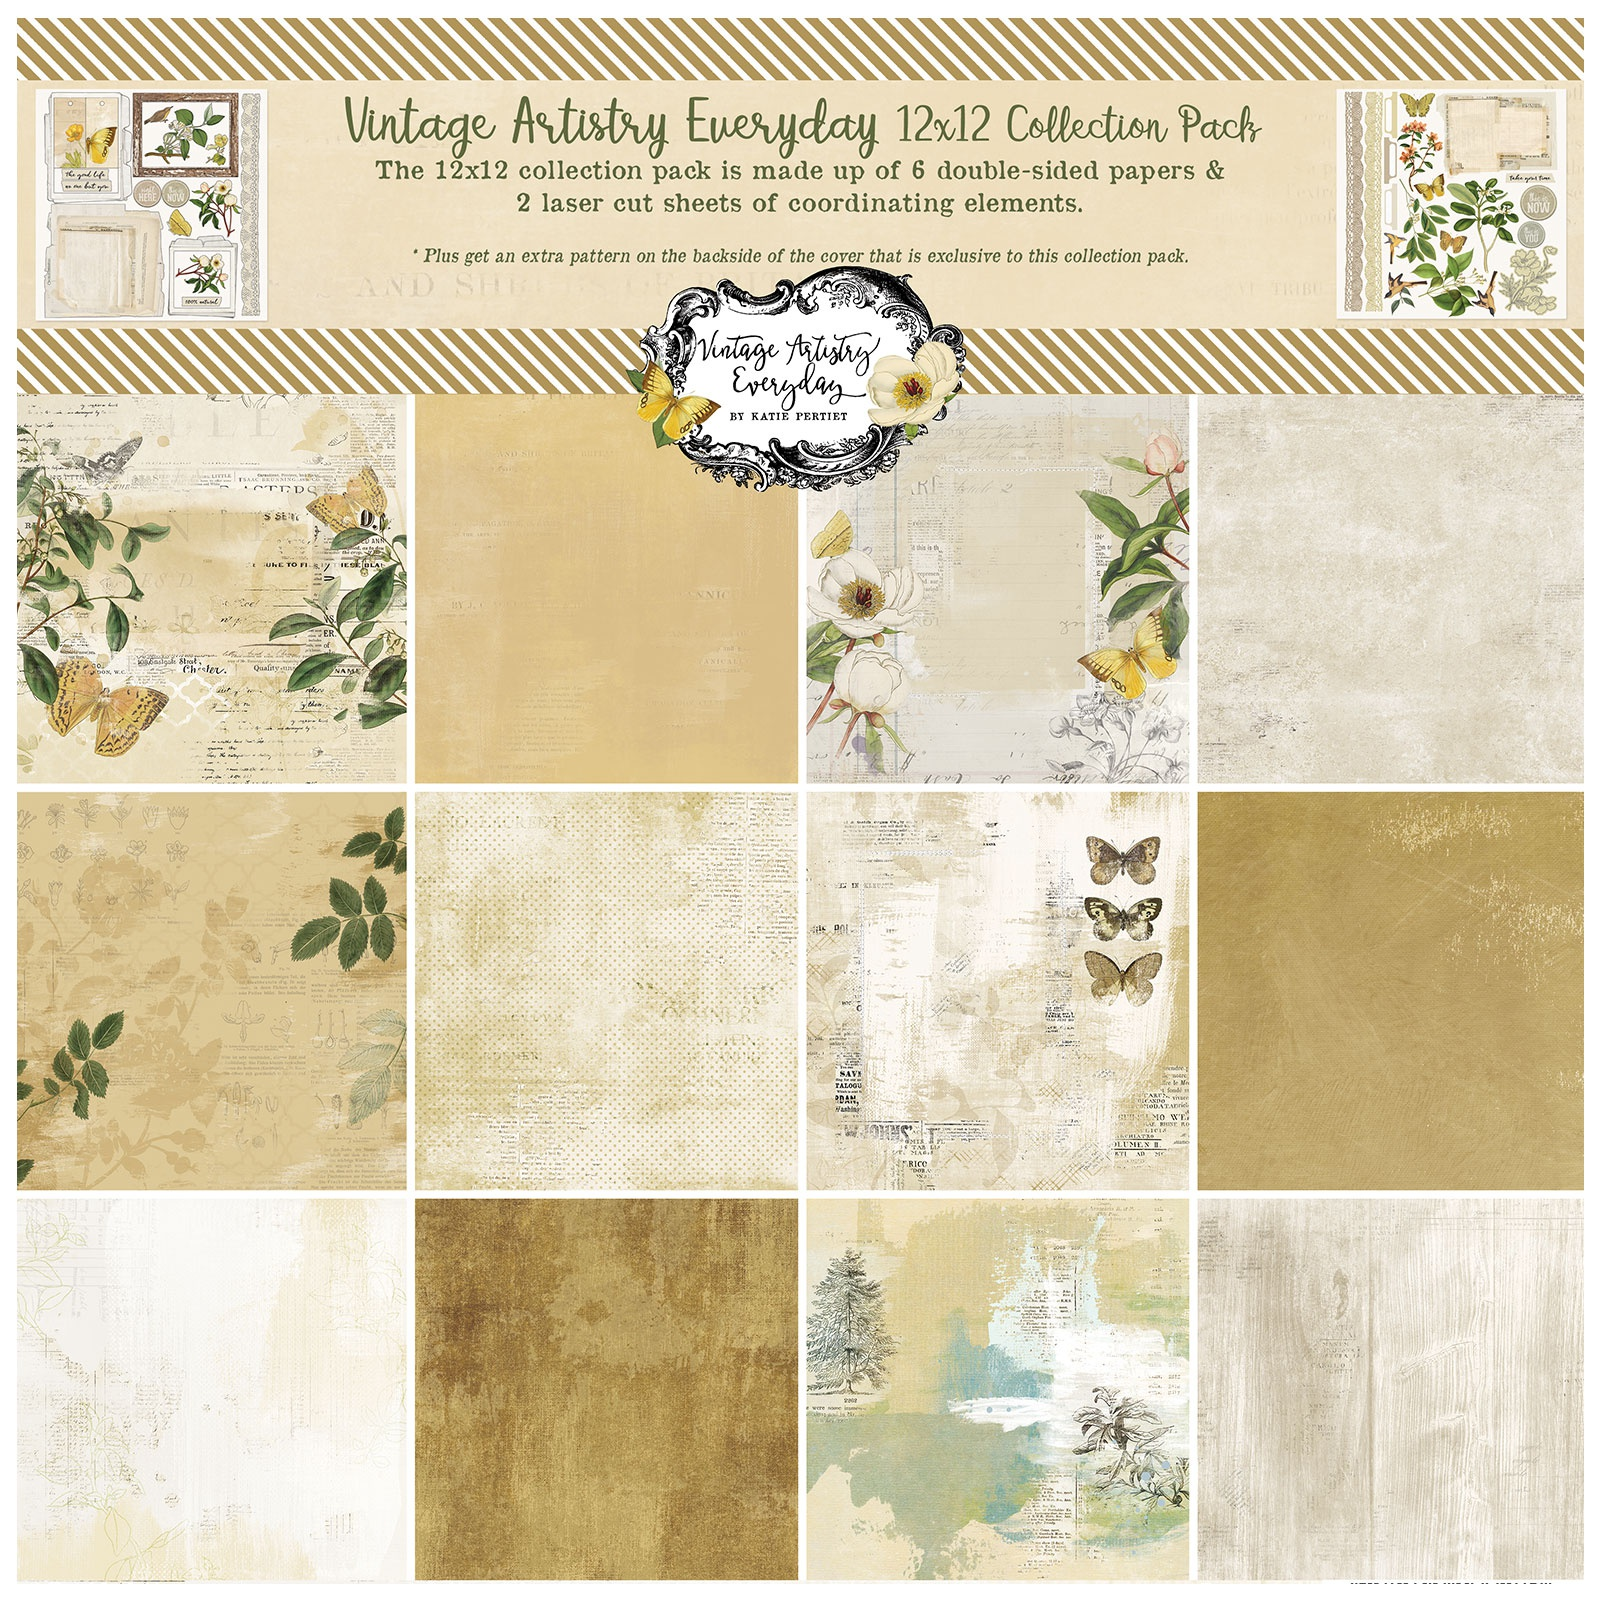 49 And Market - Vintage Artistry Everyday - 12x12 Collection Pack